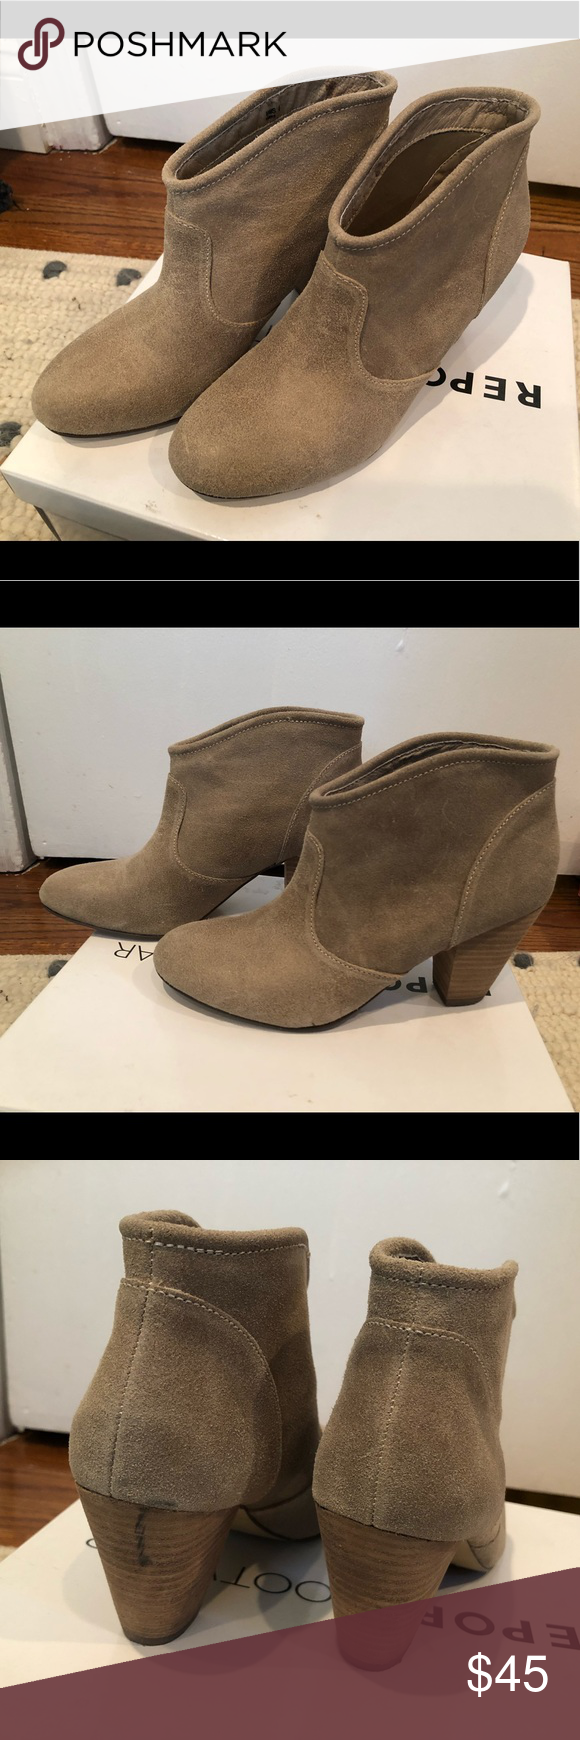 Report taupe ankle booties size 6 Report taupe ankle booties size 6. Minor black mark on back heel (see photo). Great condition other wise, worn literally twice. My loss. Purchased from Nordstrom's Report Shoes Ankle Boots & Booties